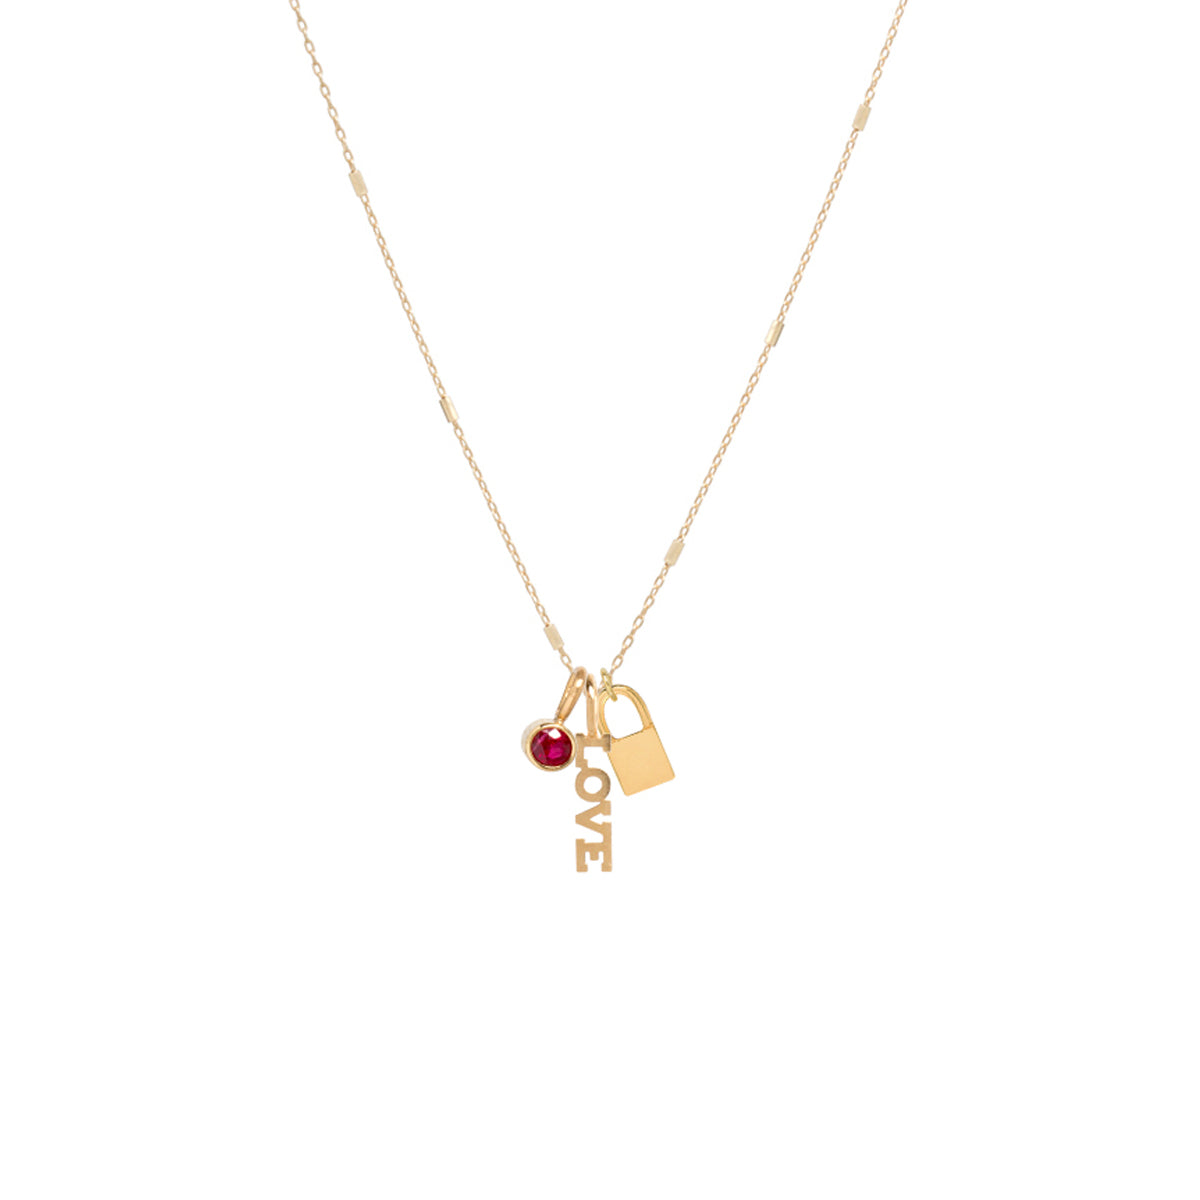 14k gold LOVE charm necklace with padlock and ruby